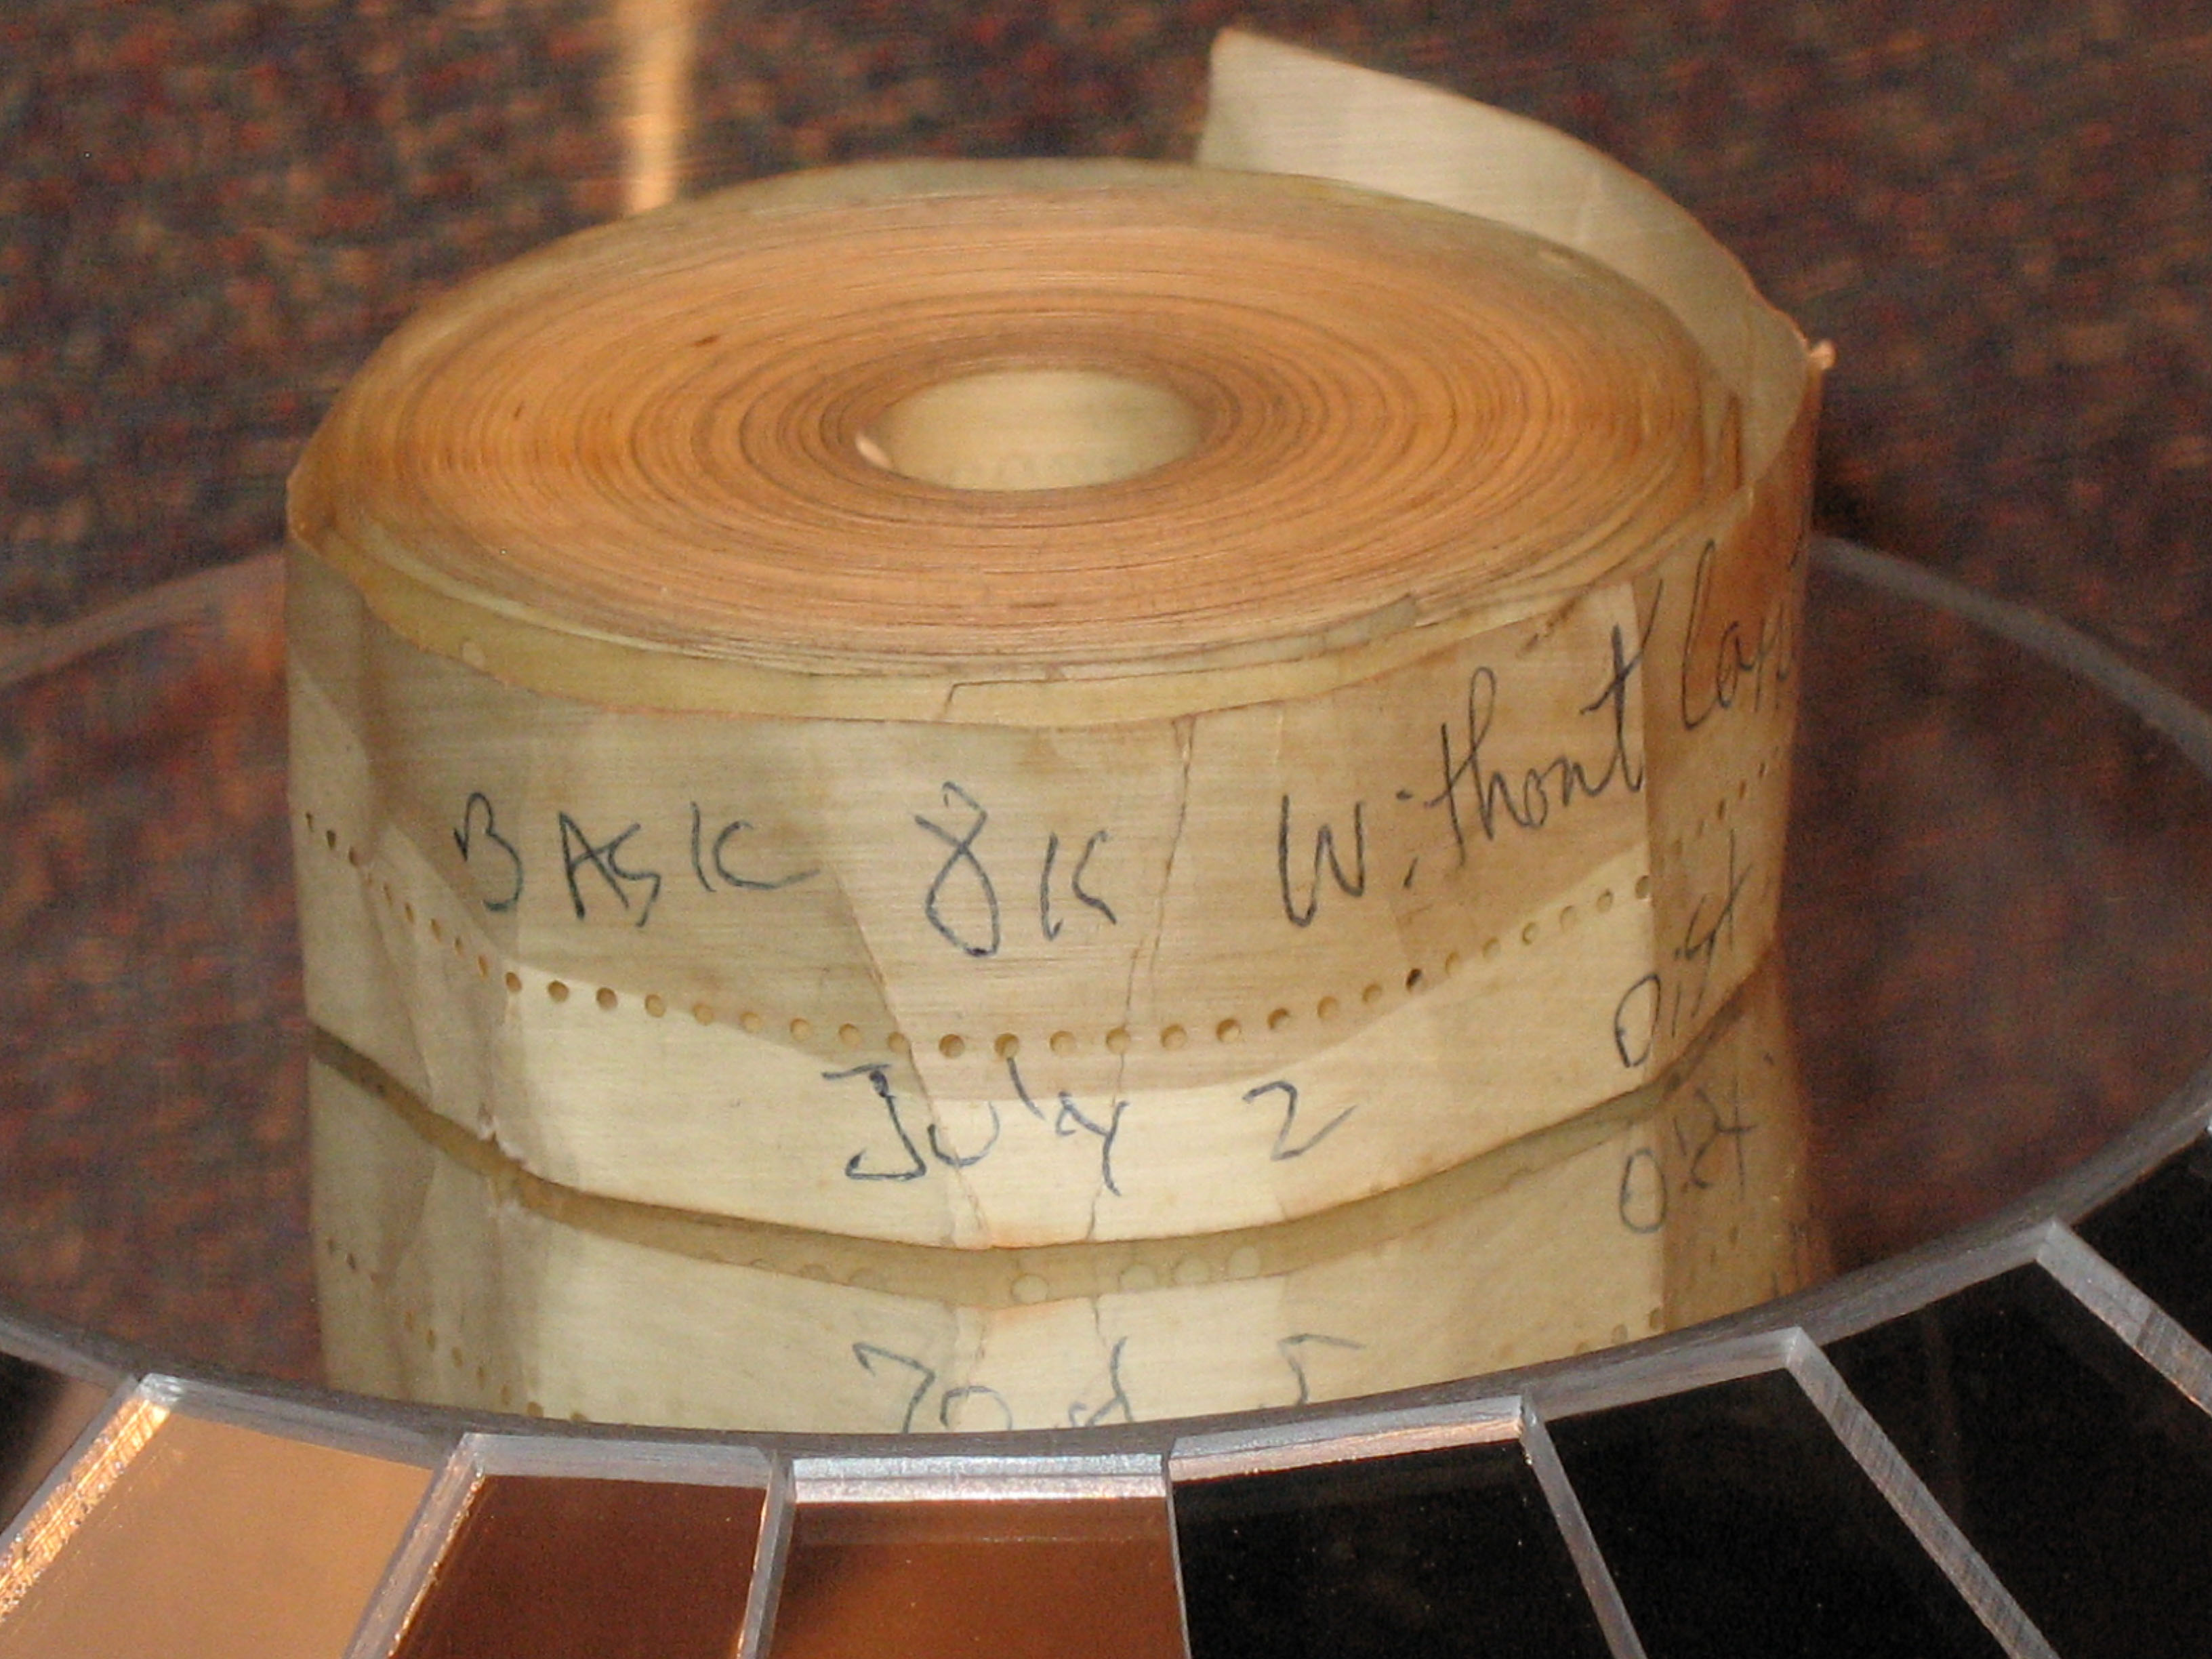 https://i1.wp.com/upload.wikimedia.org/wikipedia/commons/9/9a/Altair_BASIC_Paper_Tape.jpg